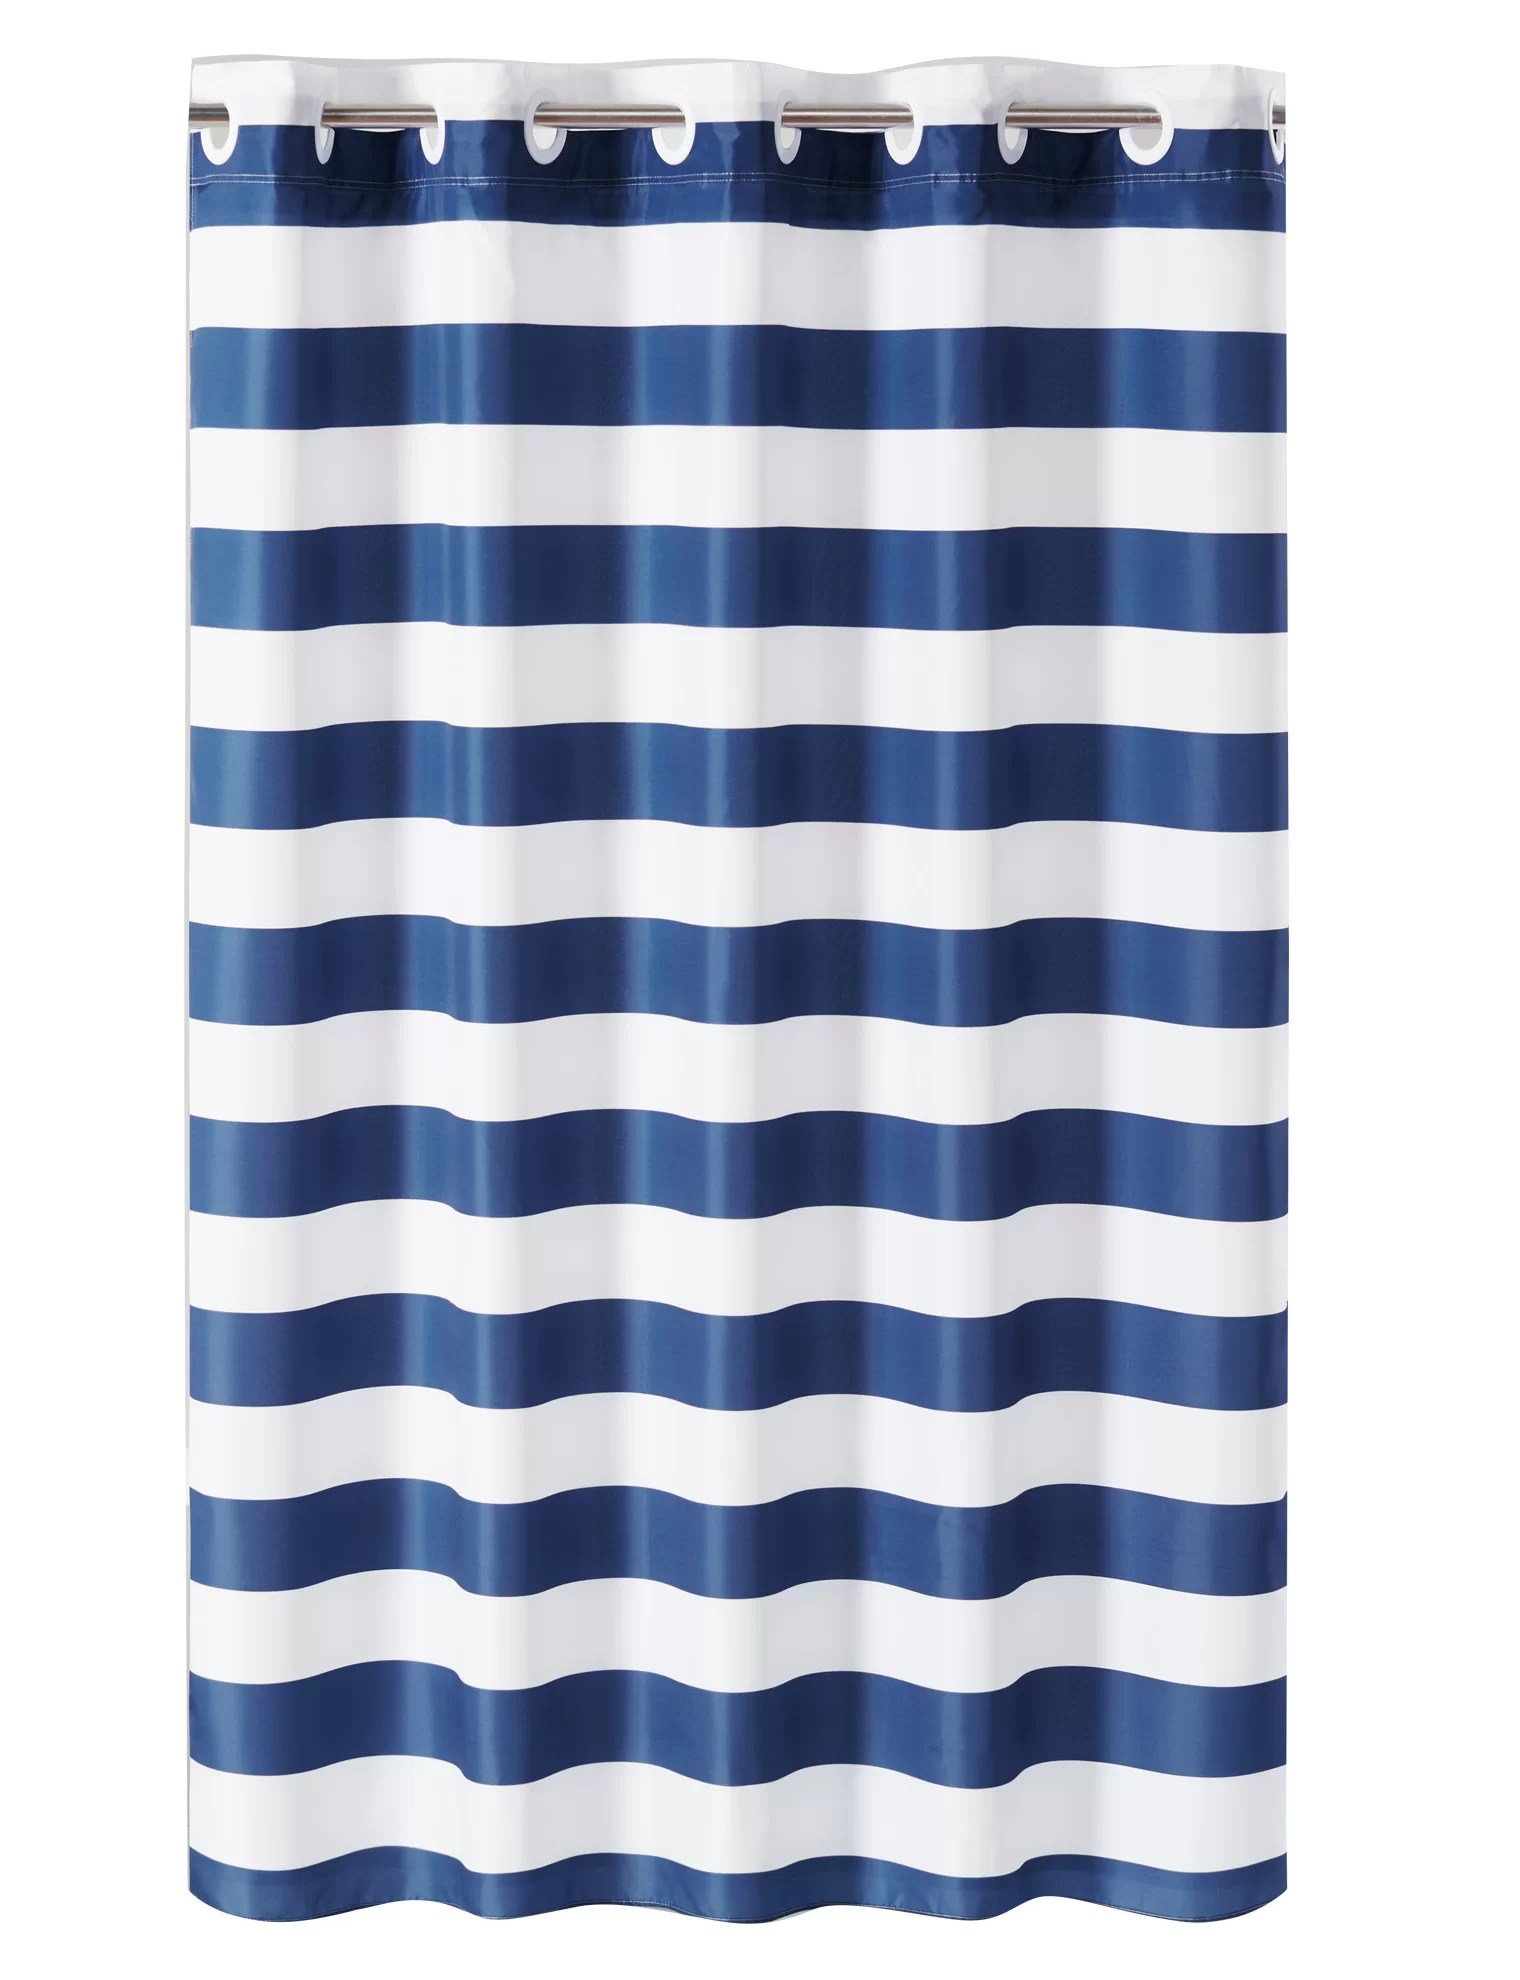 hookless shower curtain cabana stripe no window with liner navy